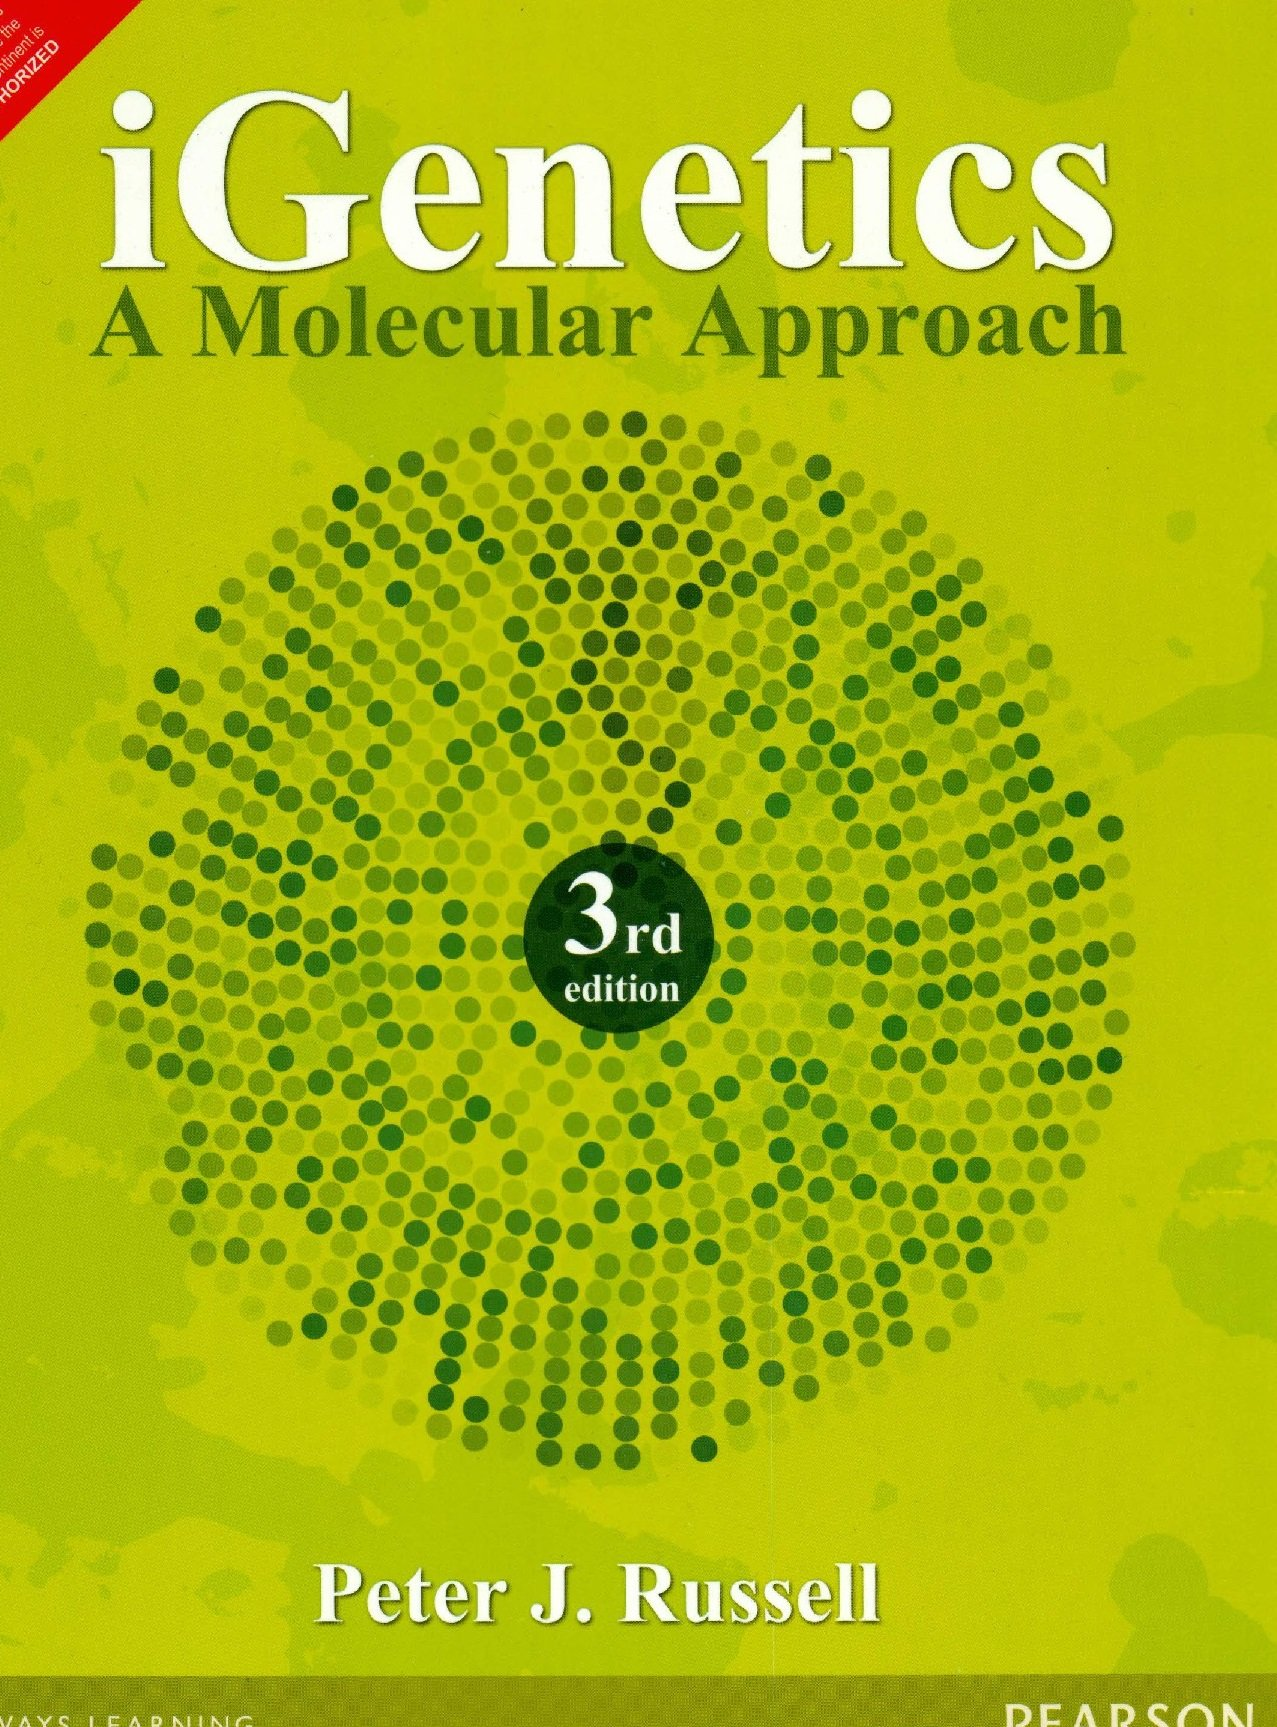 Amazon.in: Buy iGenetics: A Molecular Approach Book Online at Low Prices in  India | iGenetics: A Molecular Approach Reviews & Ratings